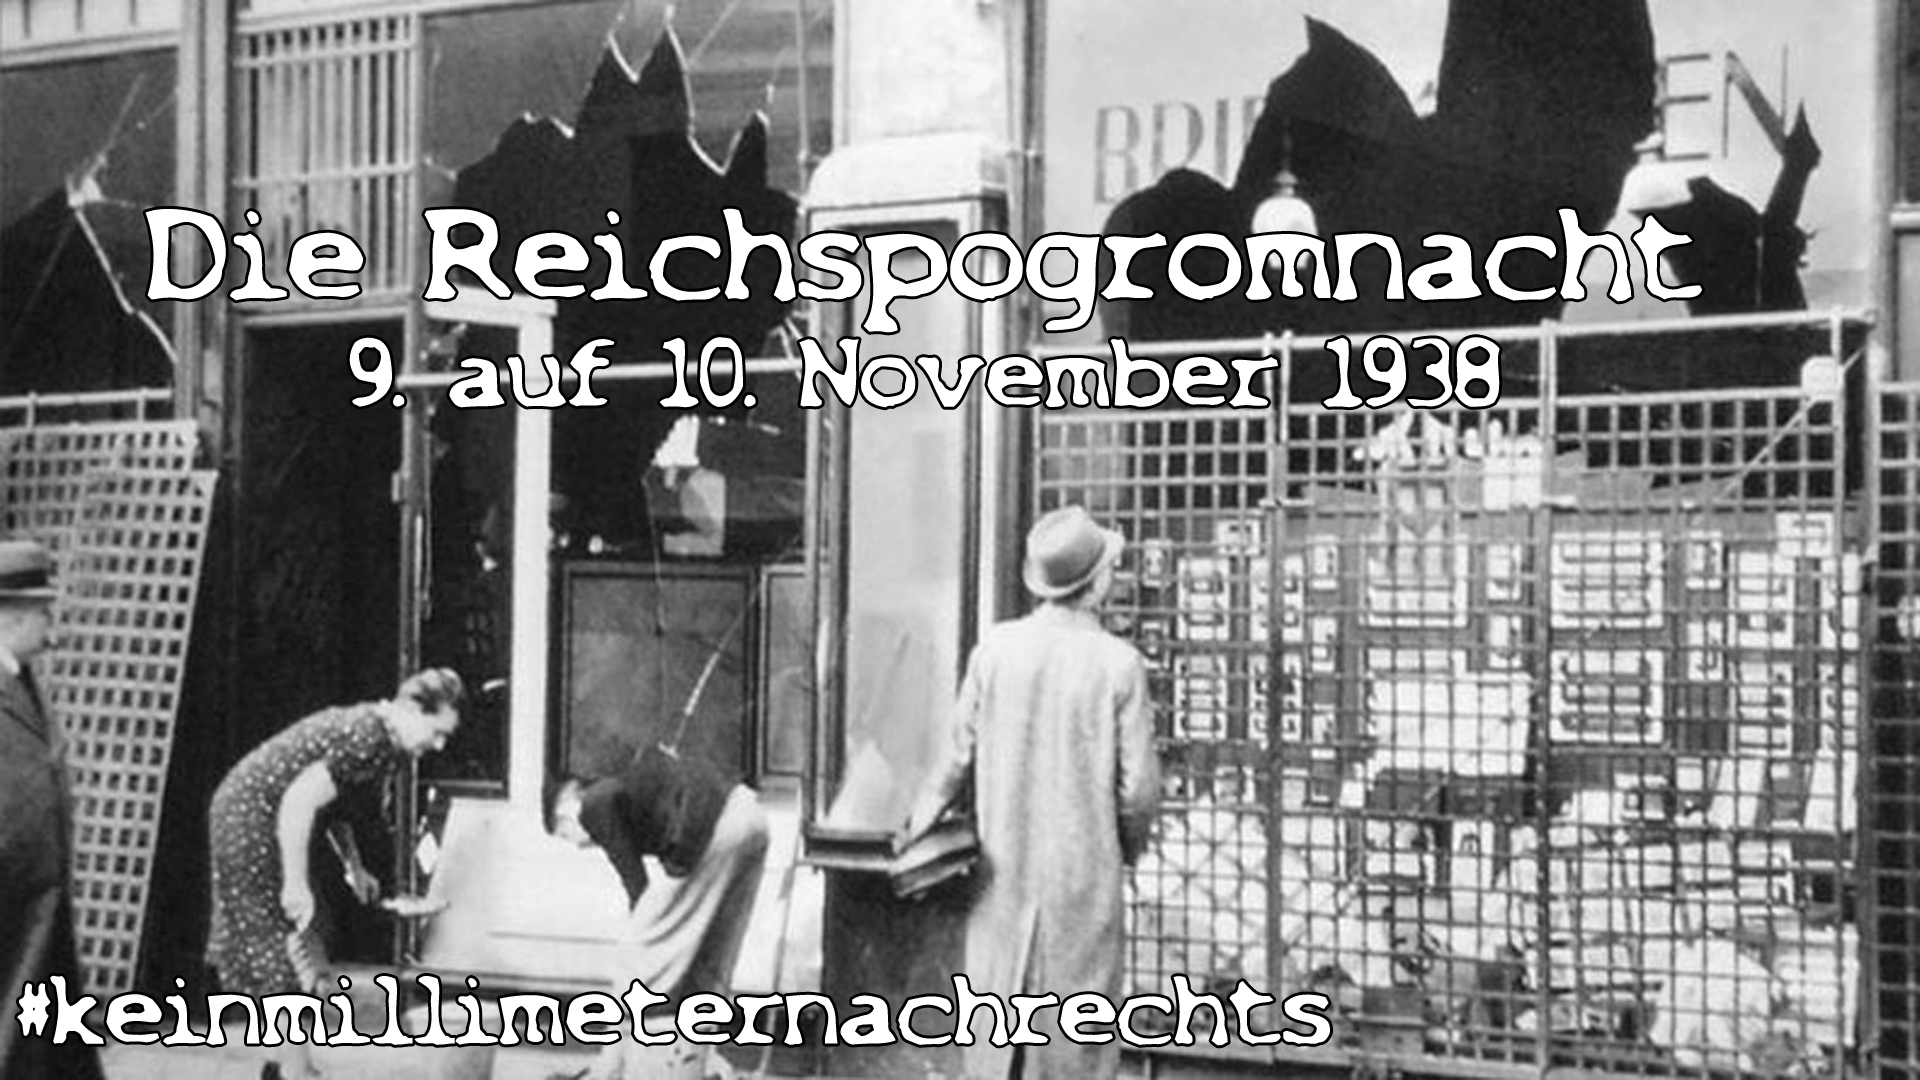 Berlin-Tiergarten am 10. November 1938. Foto: Jean-Pierre Dalbéra, Wikimedia Commons, CC BY 2.0